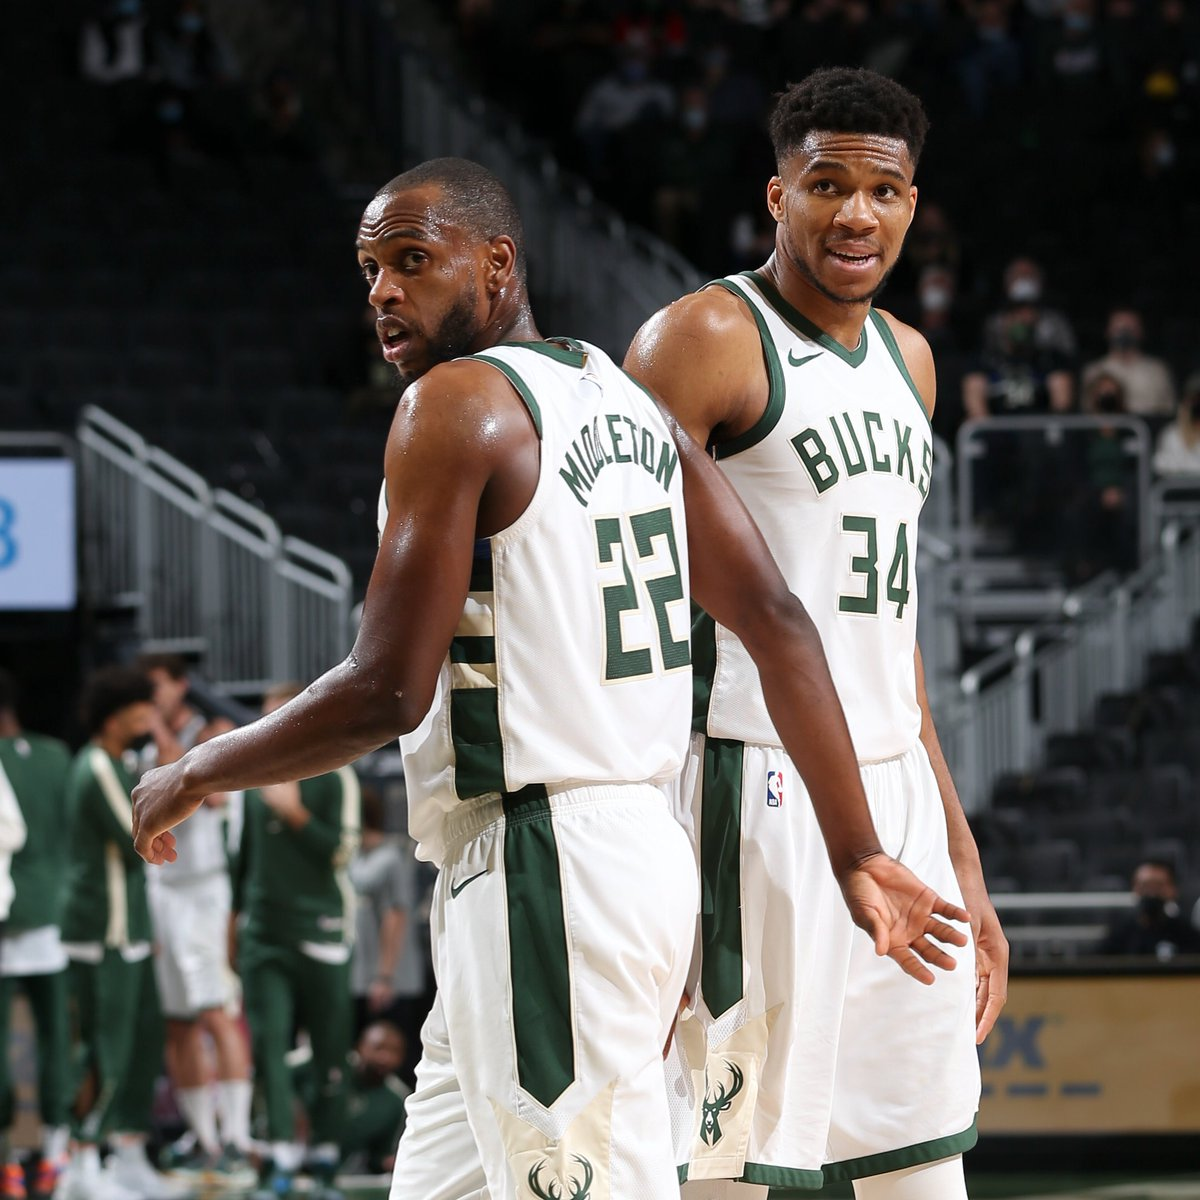 Khris Middleton and Giannis Antetokounmpo join Kobe Bryant and Shaquille O'Neal as the only teammates in NBA history to each record 30+ points and 10+ rebounds in the same game twice in a single #NBAPlayoffs. https://t.co/7CBgN9irOk